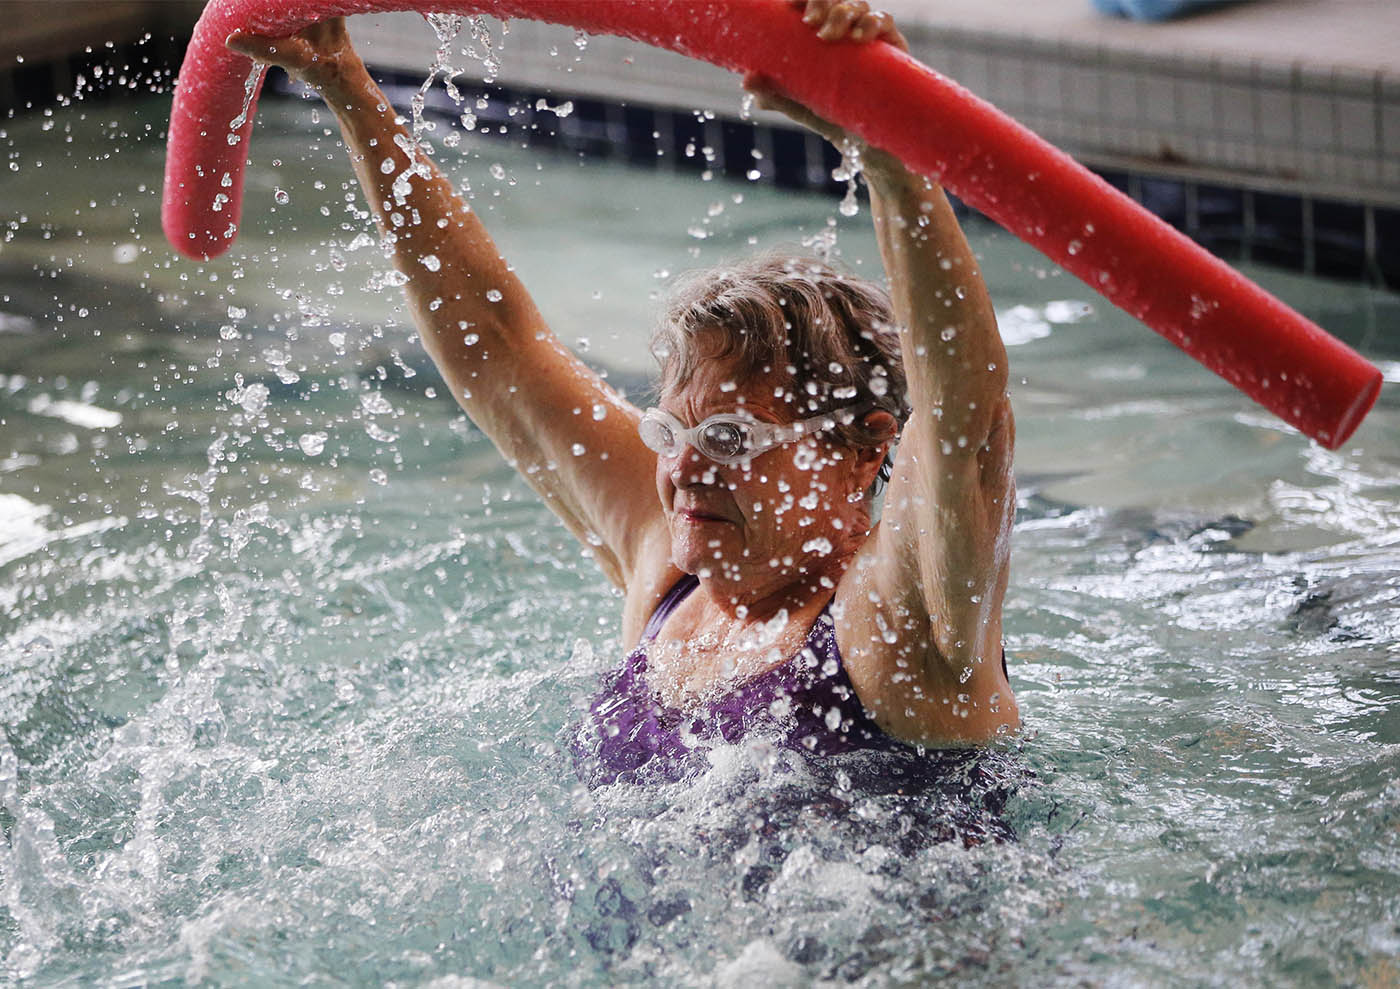 Pictures, June Walter participates in the 11:15am Aqua Aerobics class at the Town of Hamburg Therapeutic Pool on the Iris Apartments campus, Friday, Sept. 9, 2016. (Derek Gee/Buffalo News)